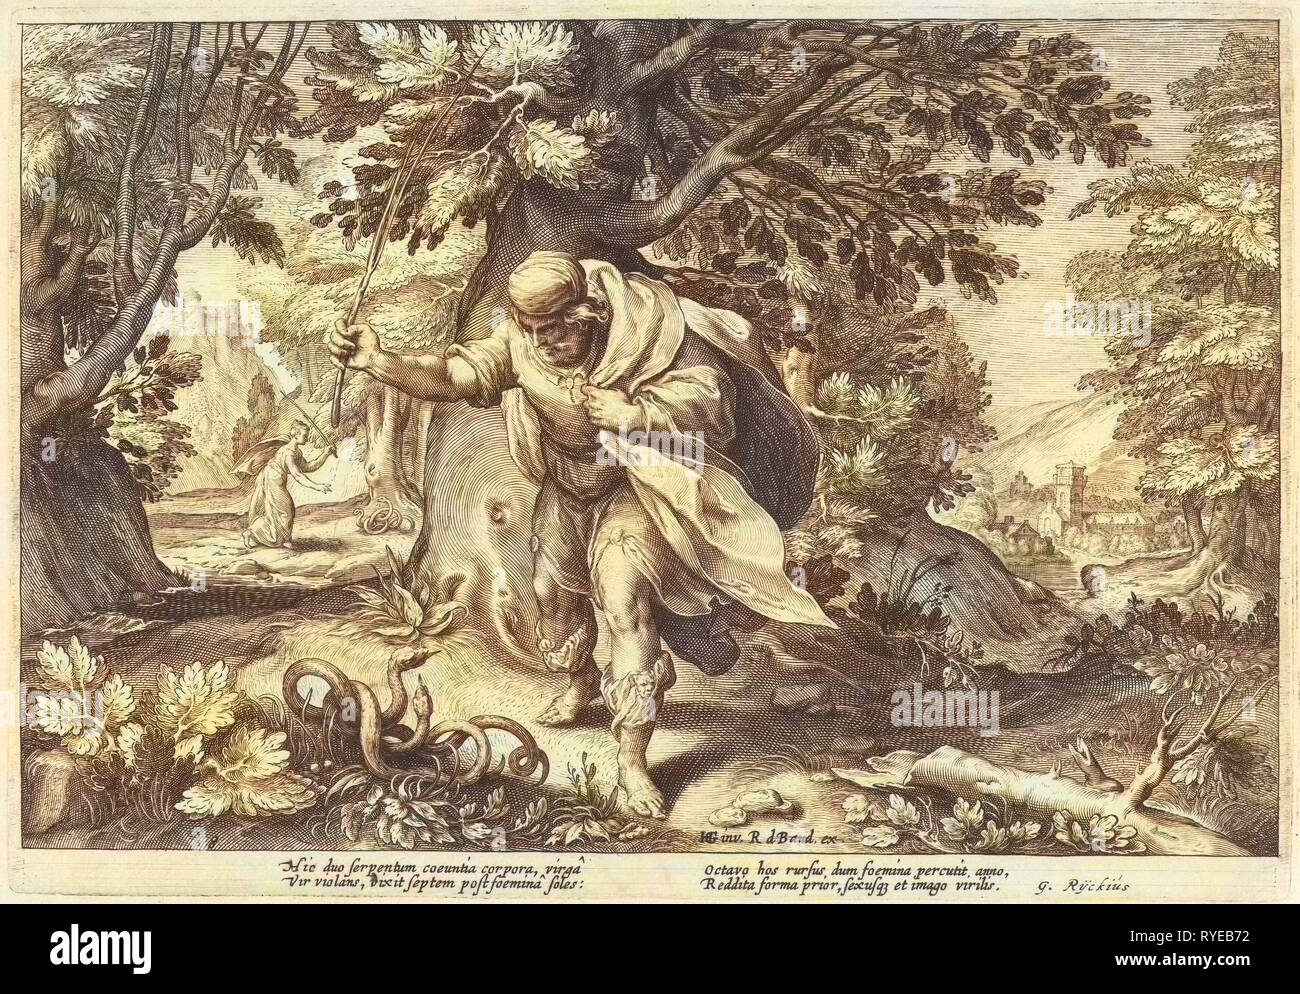 Teiresias stores in a forest two mating snakes. Then he turned into a woman. Seven years later he changed back into a man again after two mating snakes have beaten, part of a series of 52 prints that depict stories from Ovid's Metamorphoses, print maker: Hendrick Goltzius (workshop of), Dating 1615 - Stock Image